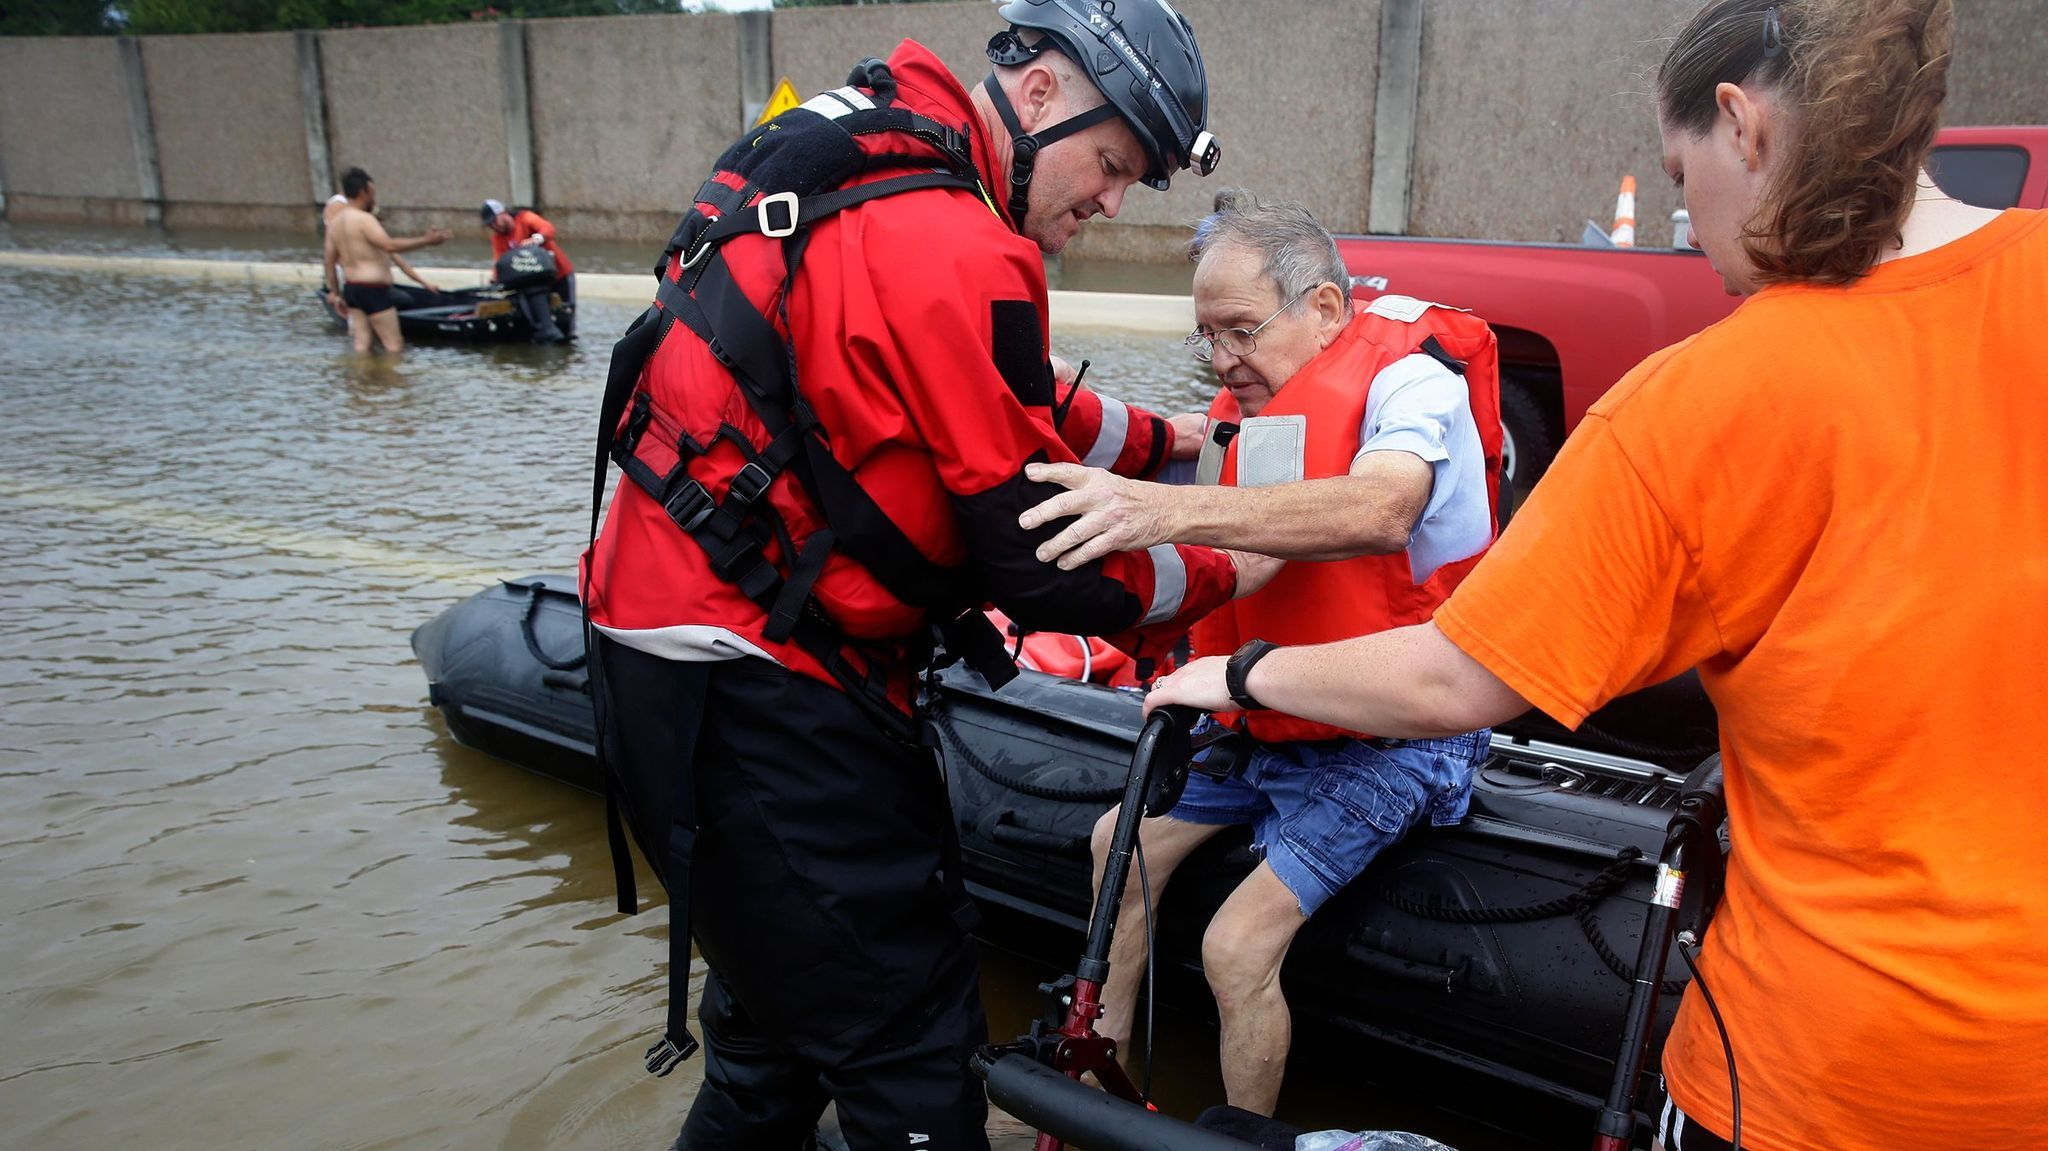 A Houston Police Department officer helps Frank Andrews, 74, into his walking chair after rescuing him from his flooded home in the Braeswood Place neighborhood southwest of Houston.